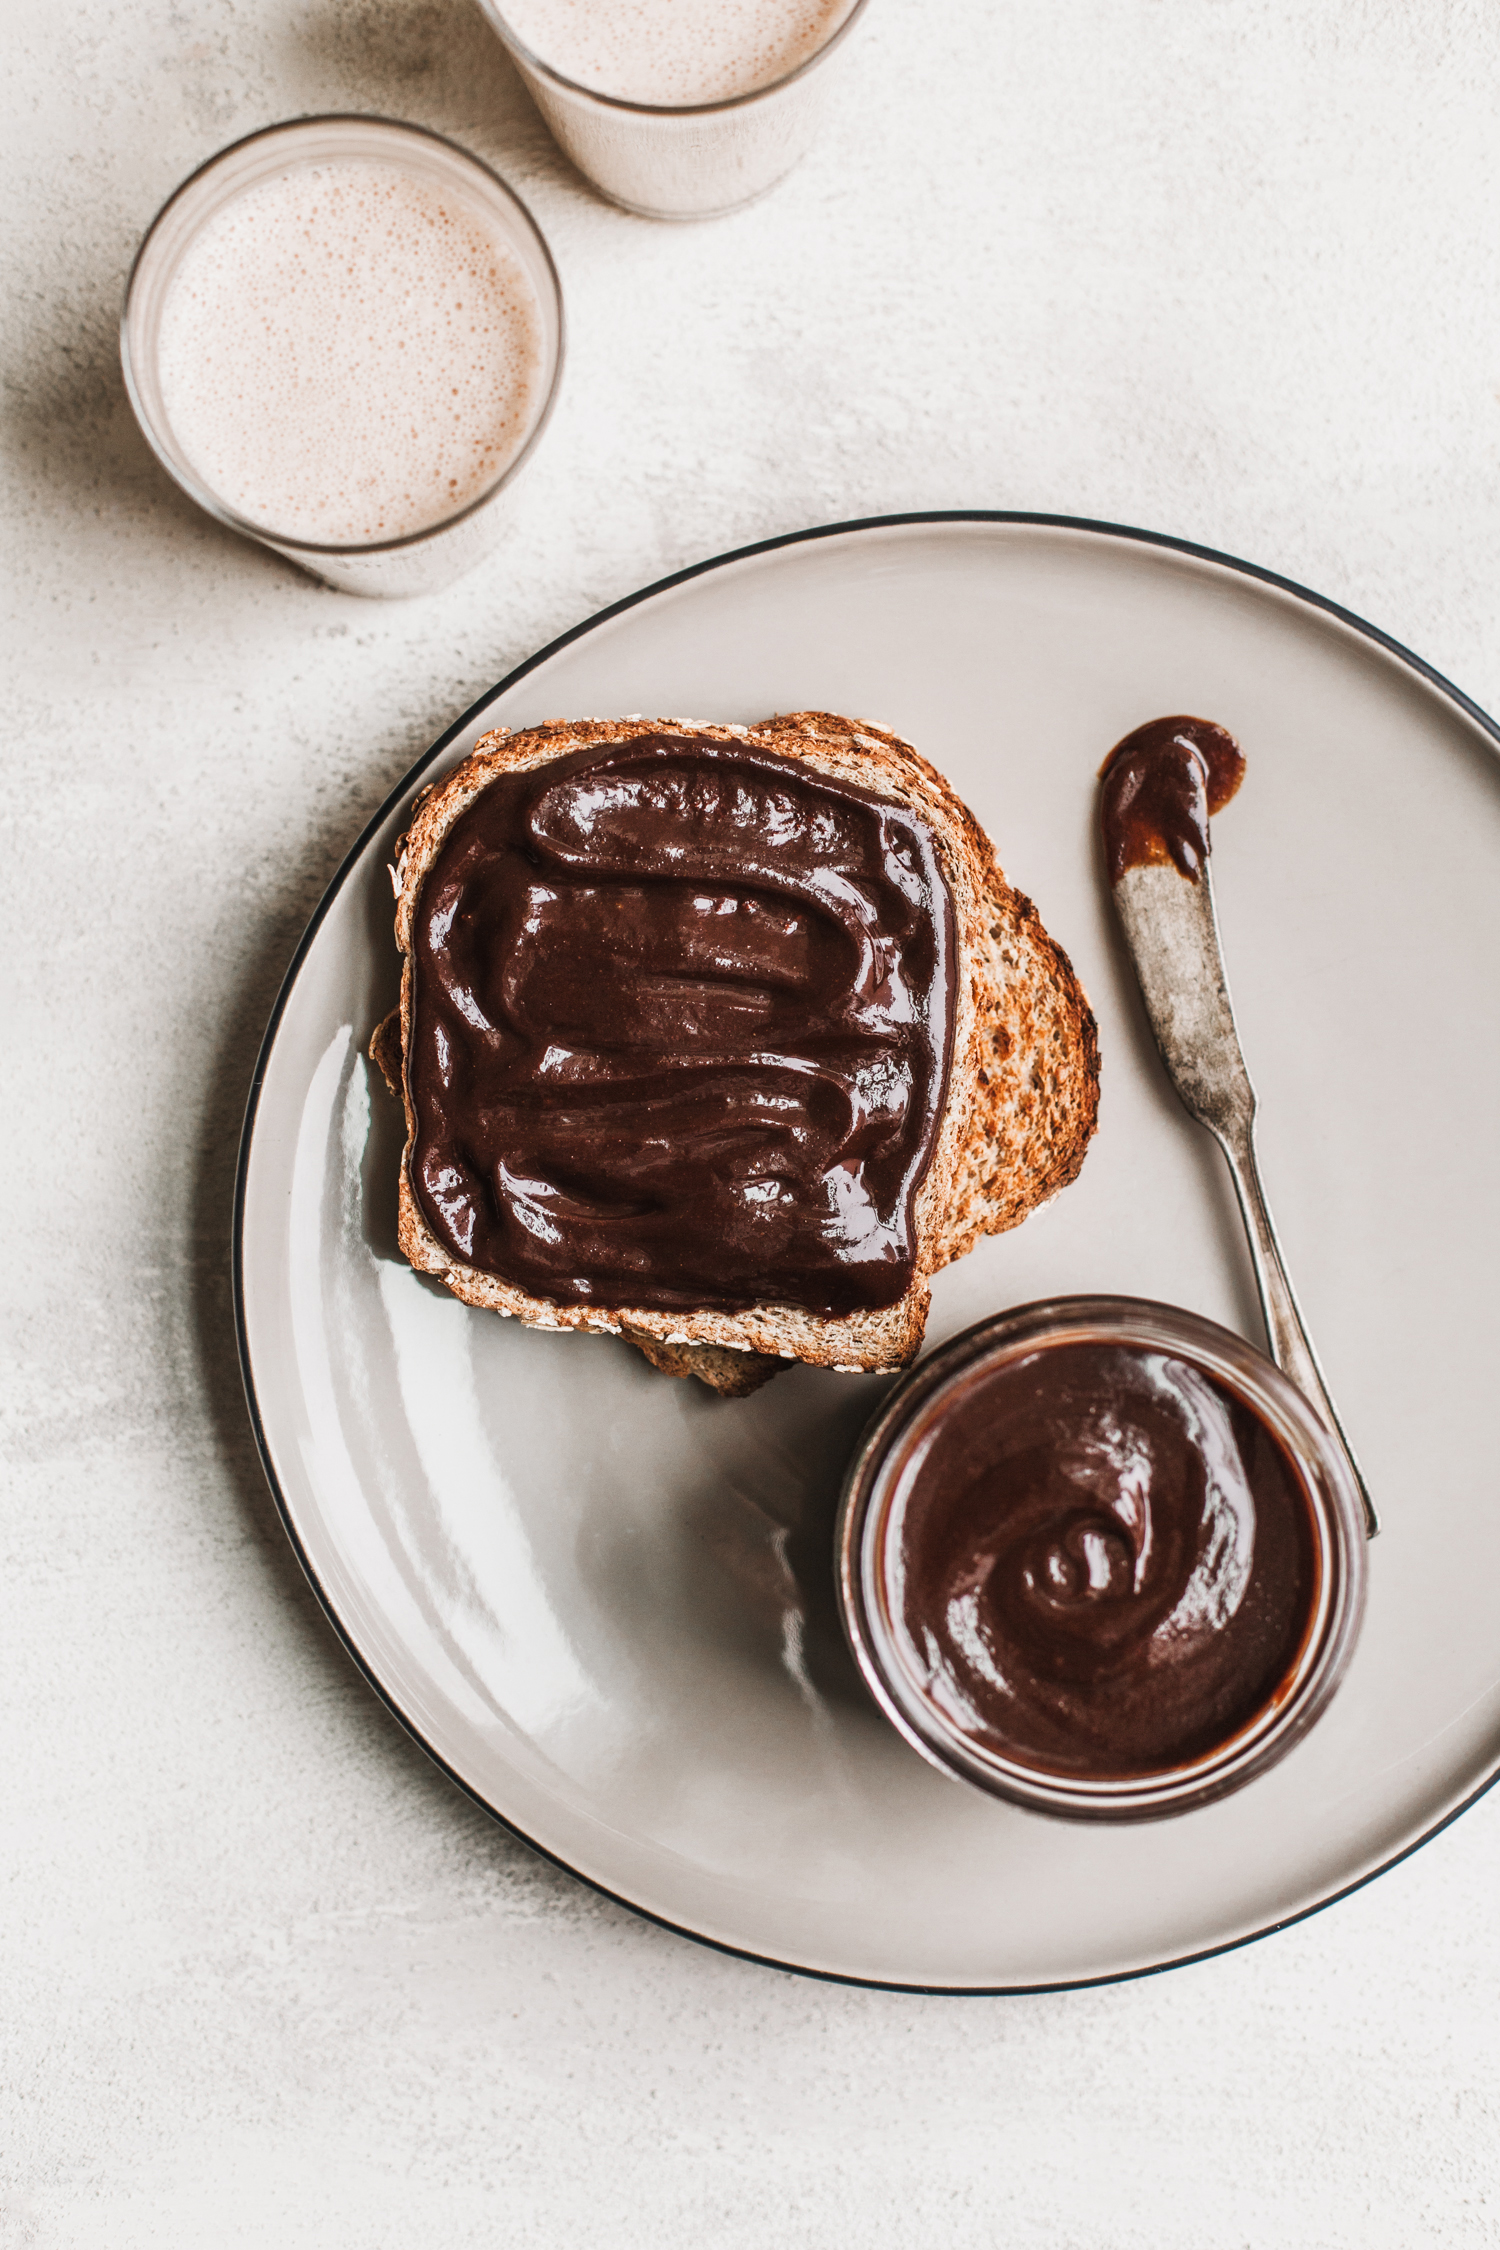 Super Decadent Vegan Chocolate Walnut Spread - Golubka Kitchen